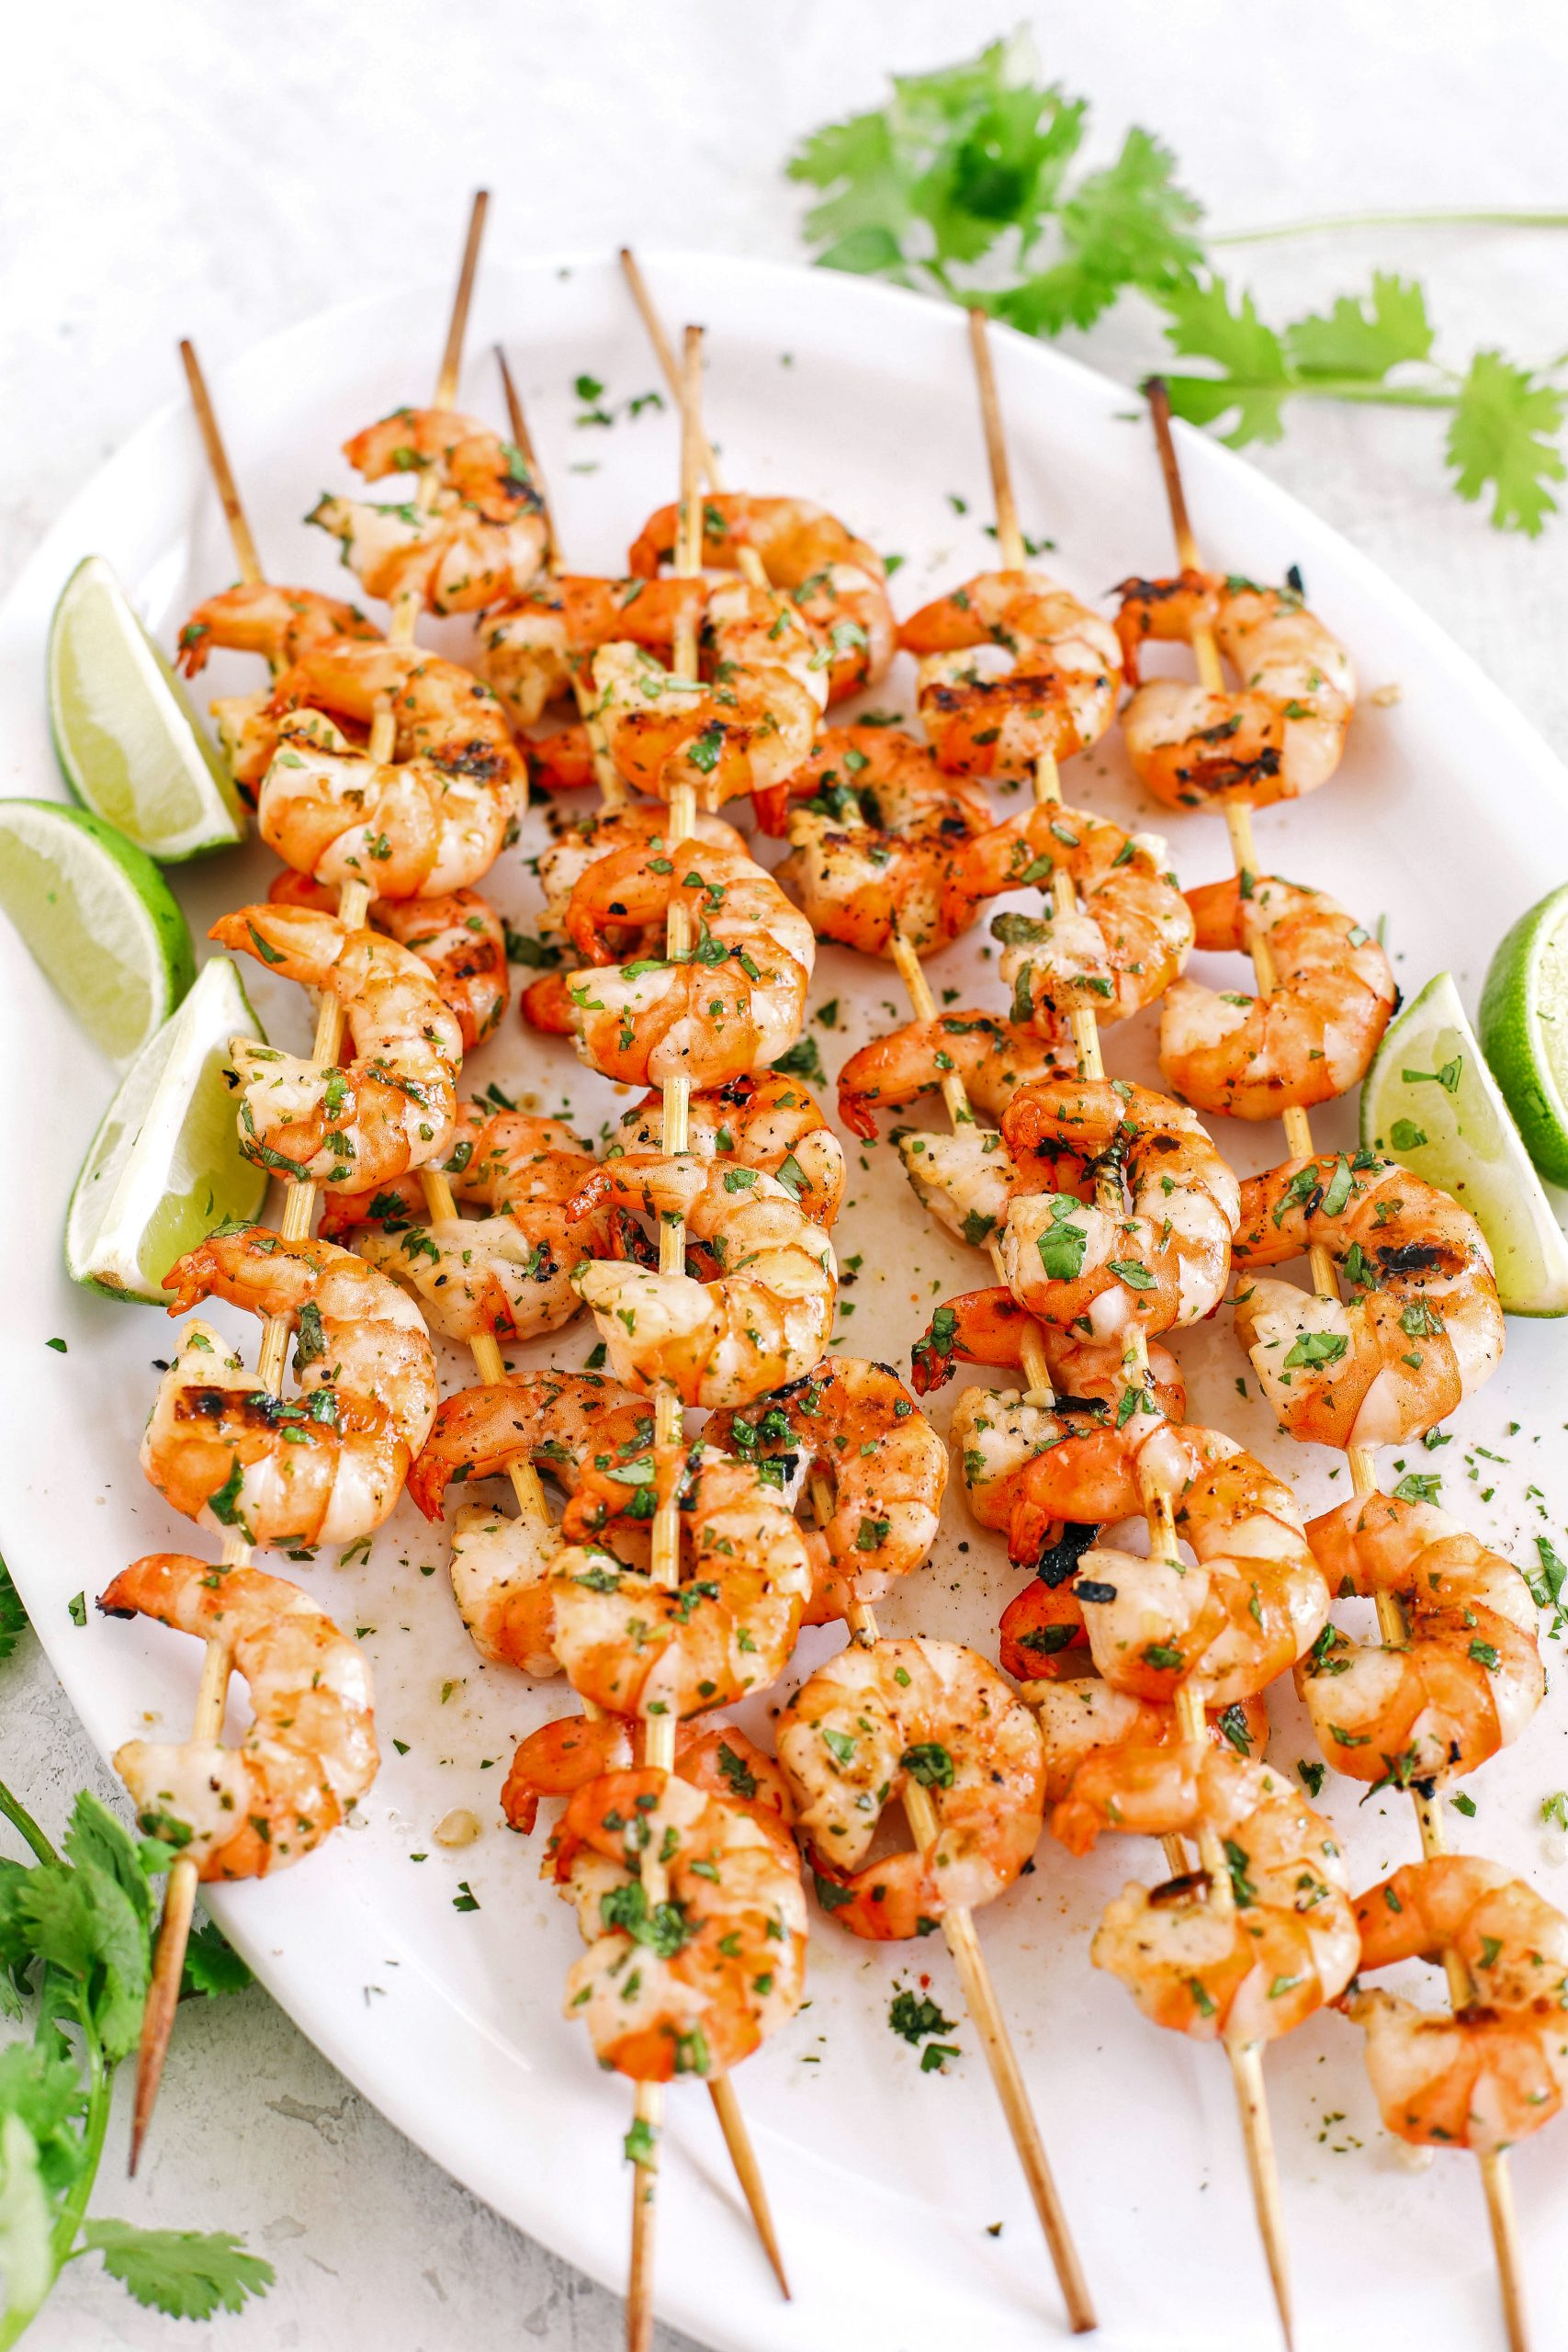 These Margarita Shrimp Skewers make the perfect summer meal that is light, healthy and marinated in garlic, fresh lime juice, cilantro and of course, tequila!